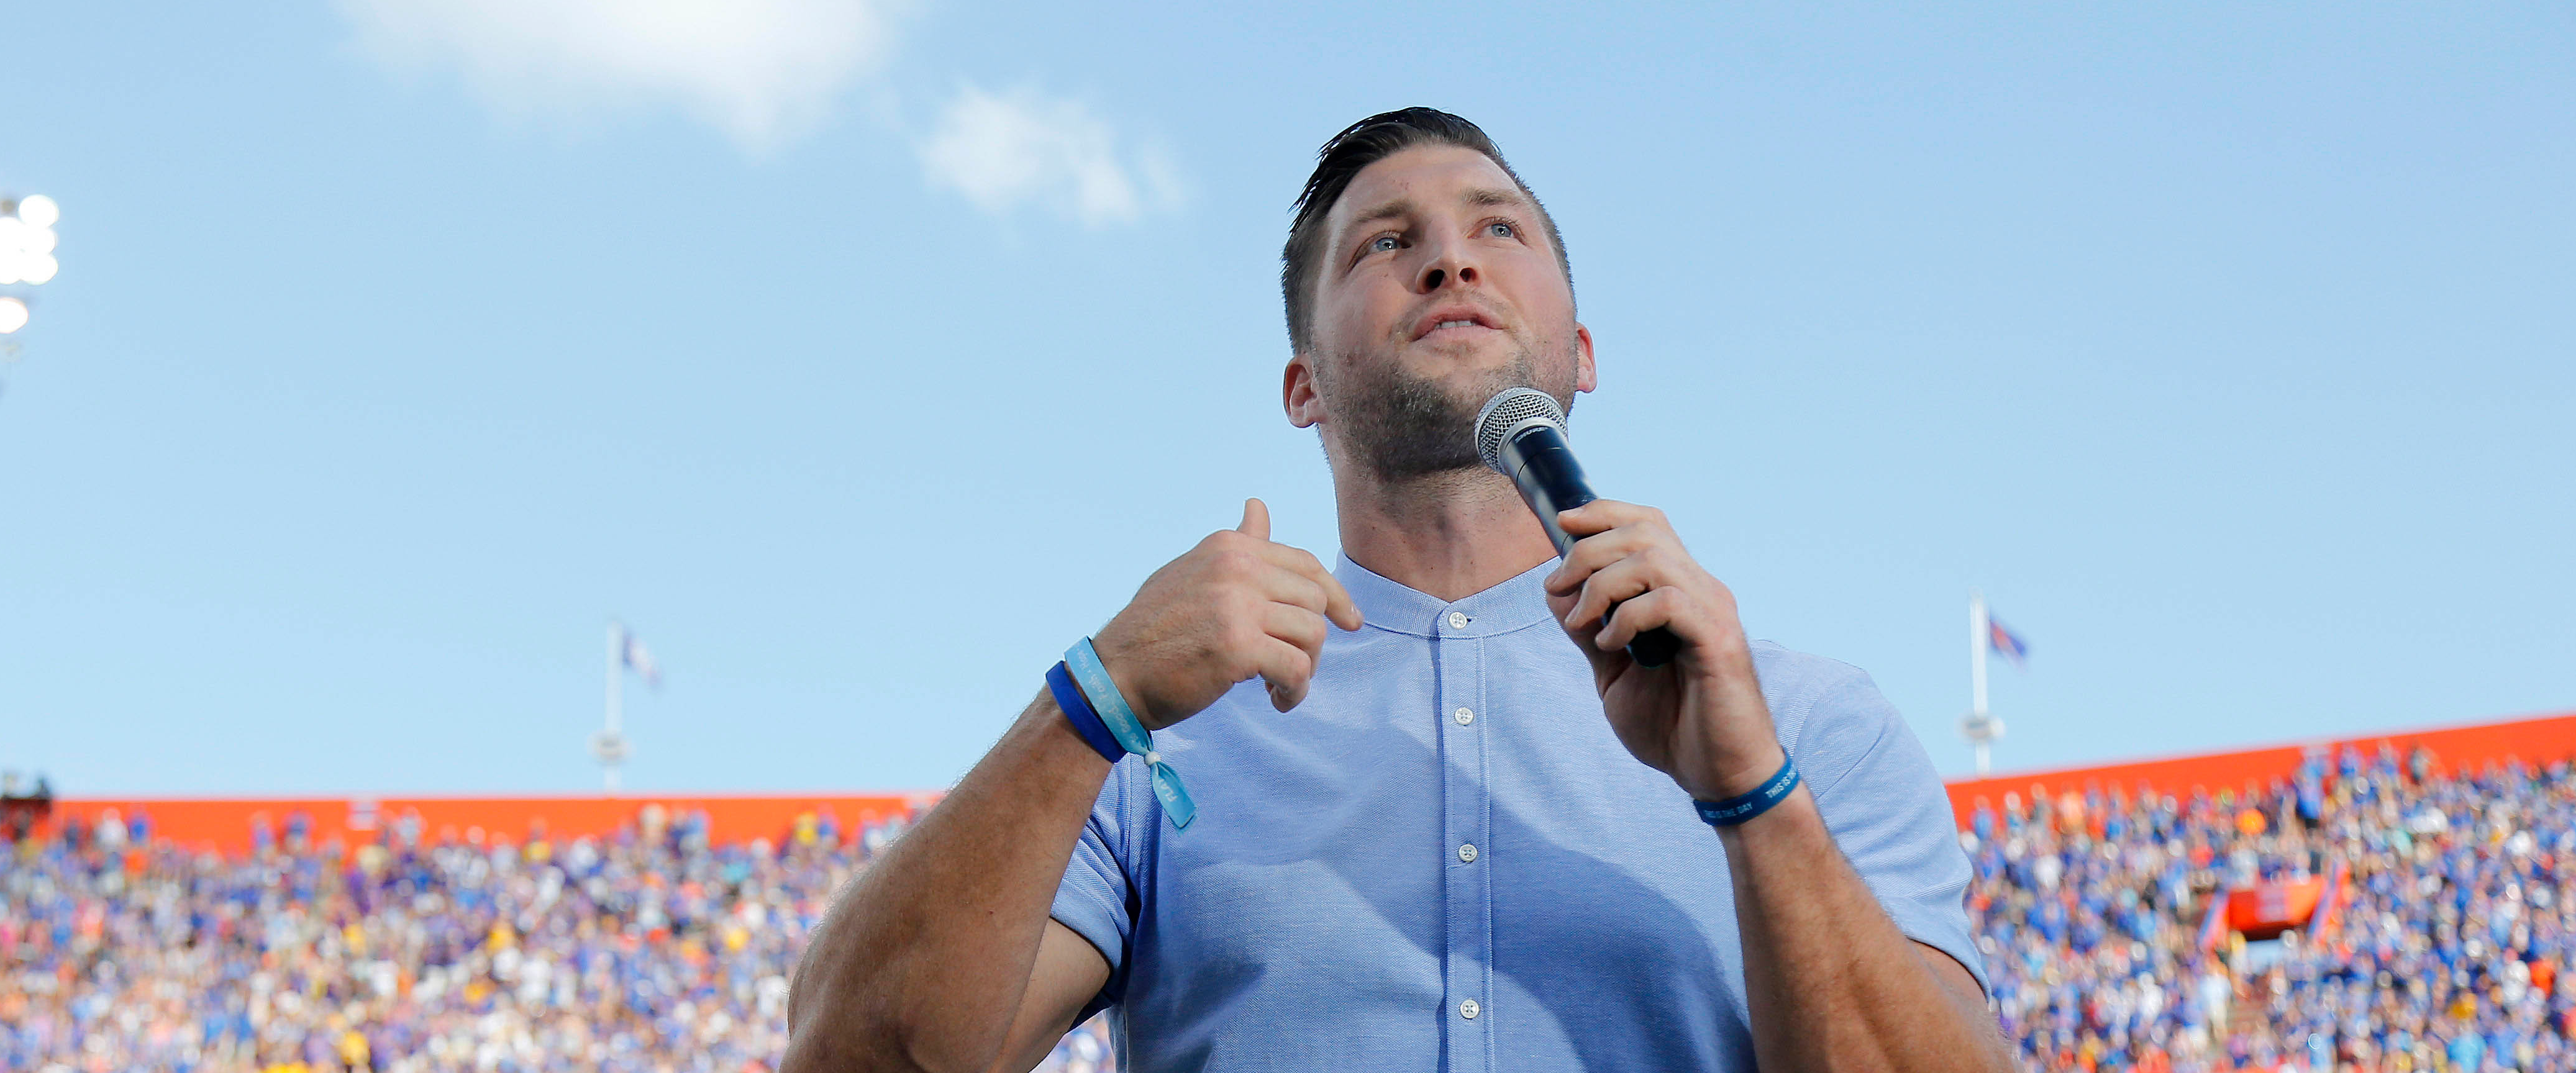 The Tim Tebow signing is both heinous and disrespectful